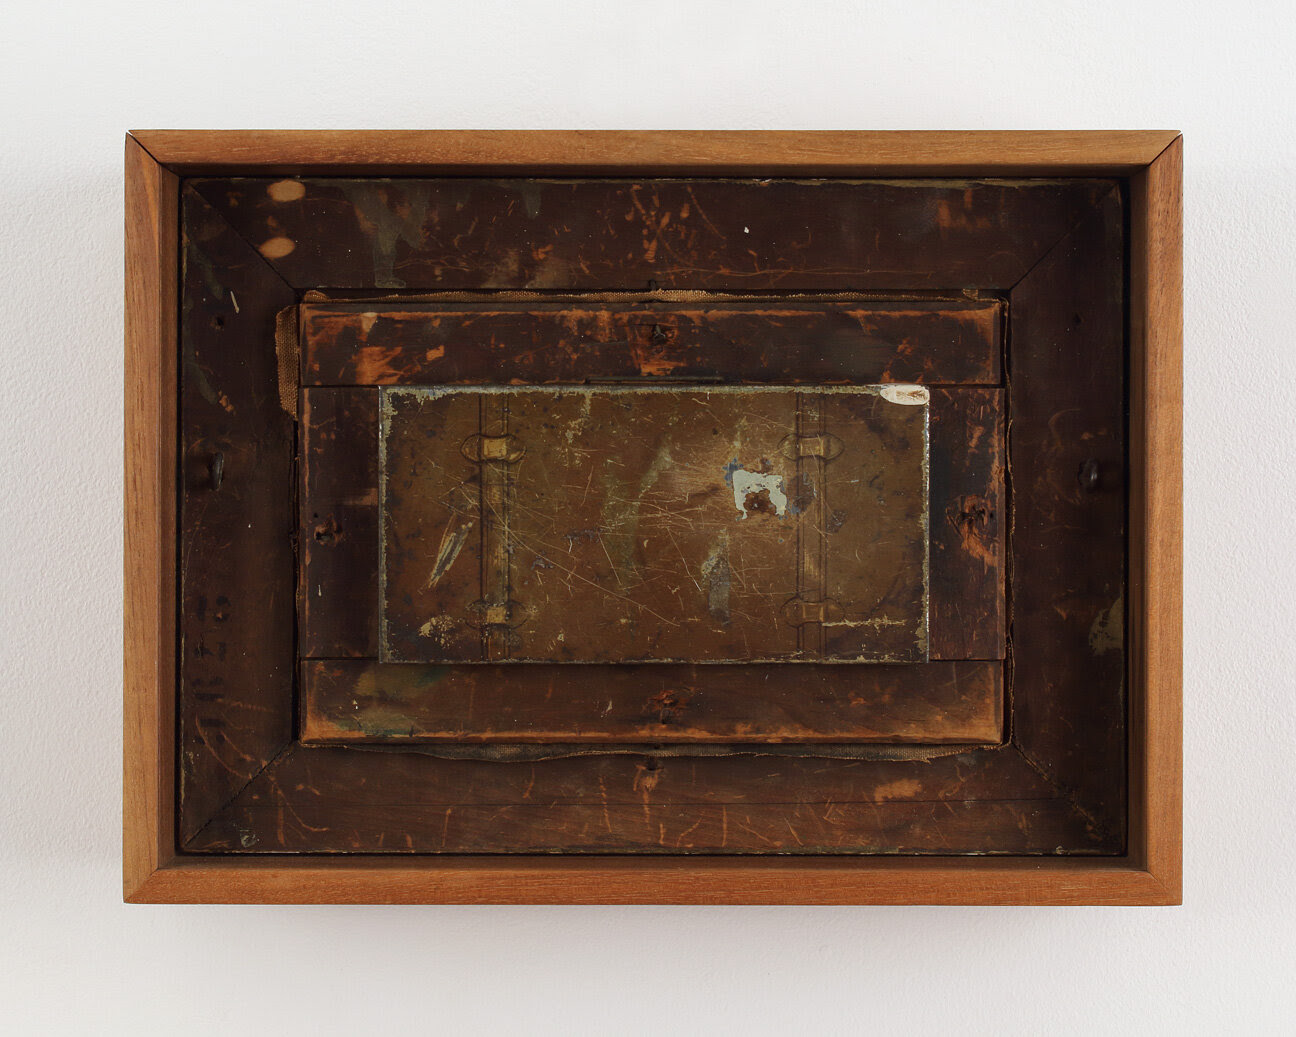 Duchamp's Valise, 1990, mixed media construction, 11 1/4 x 15 1/4 x 4 1/2 inches